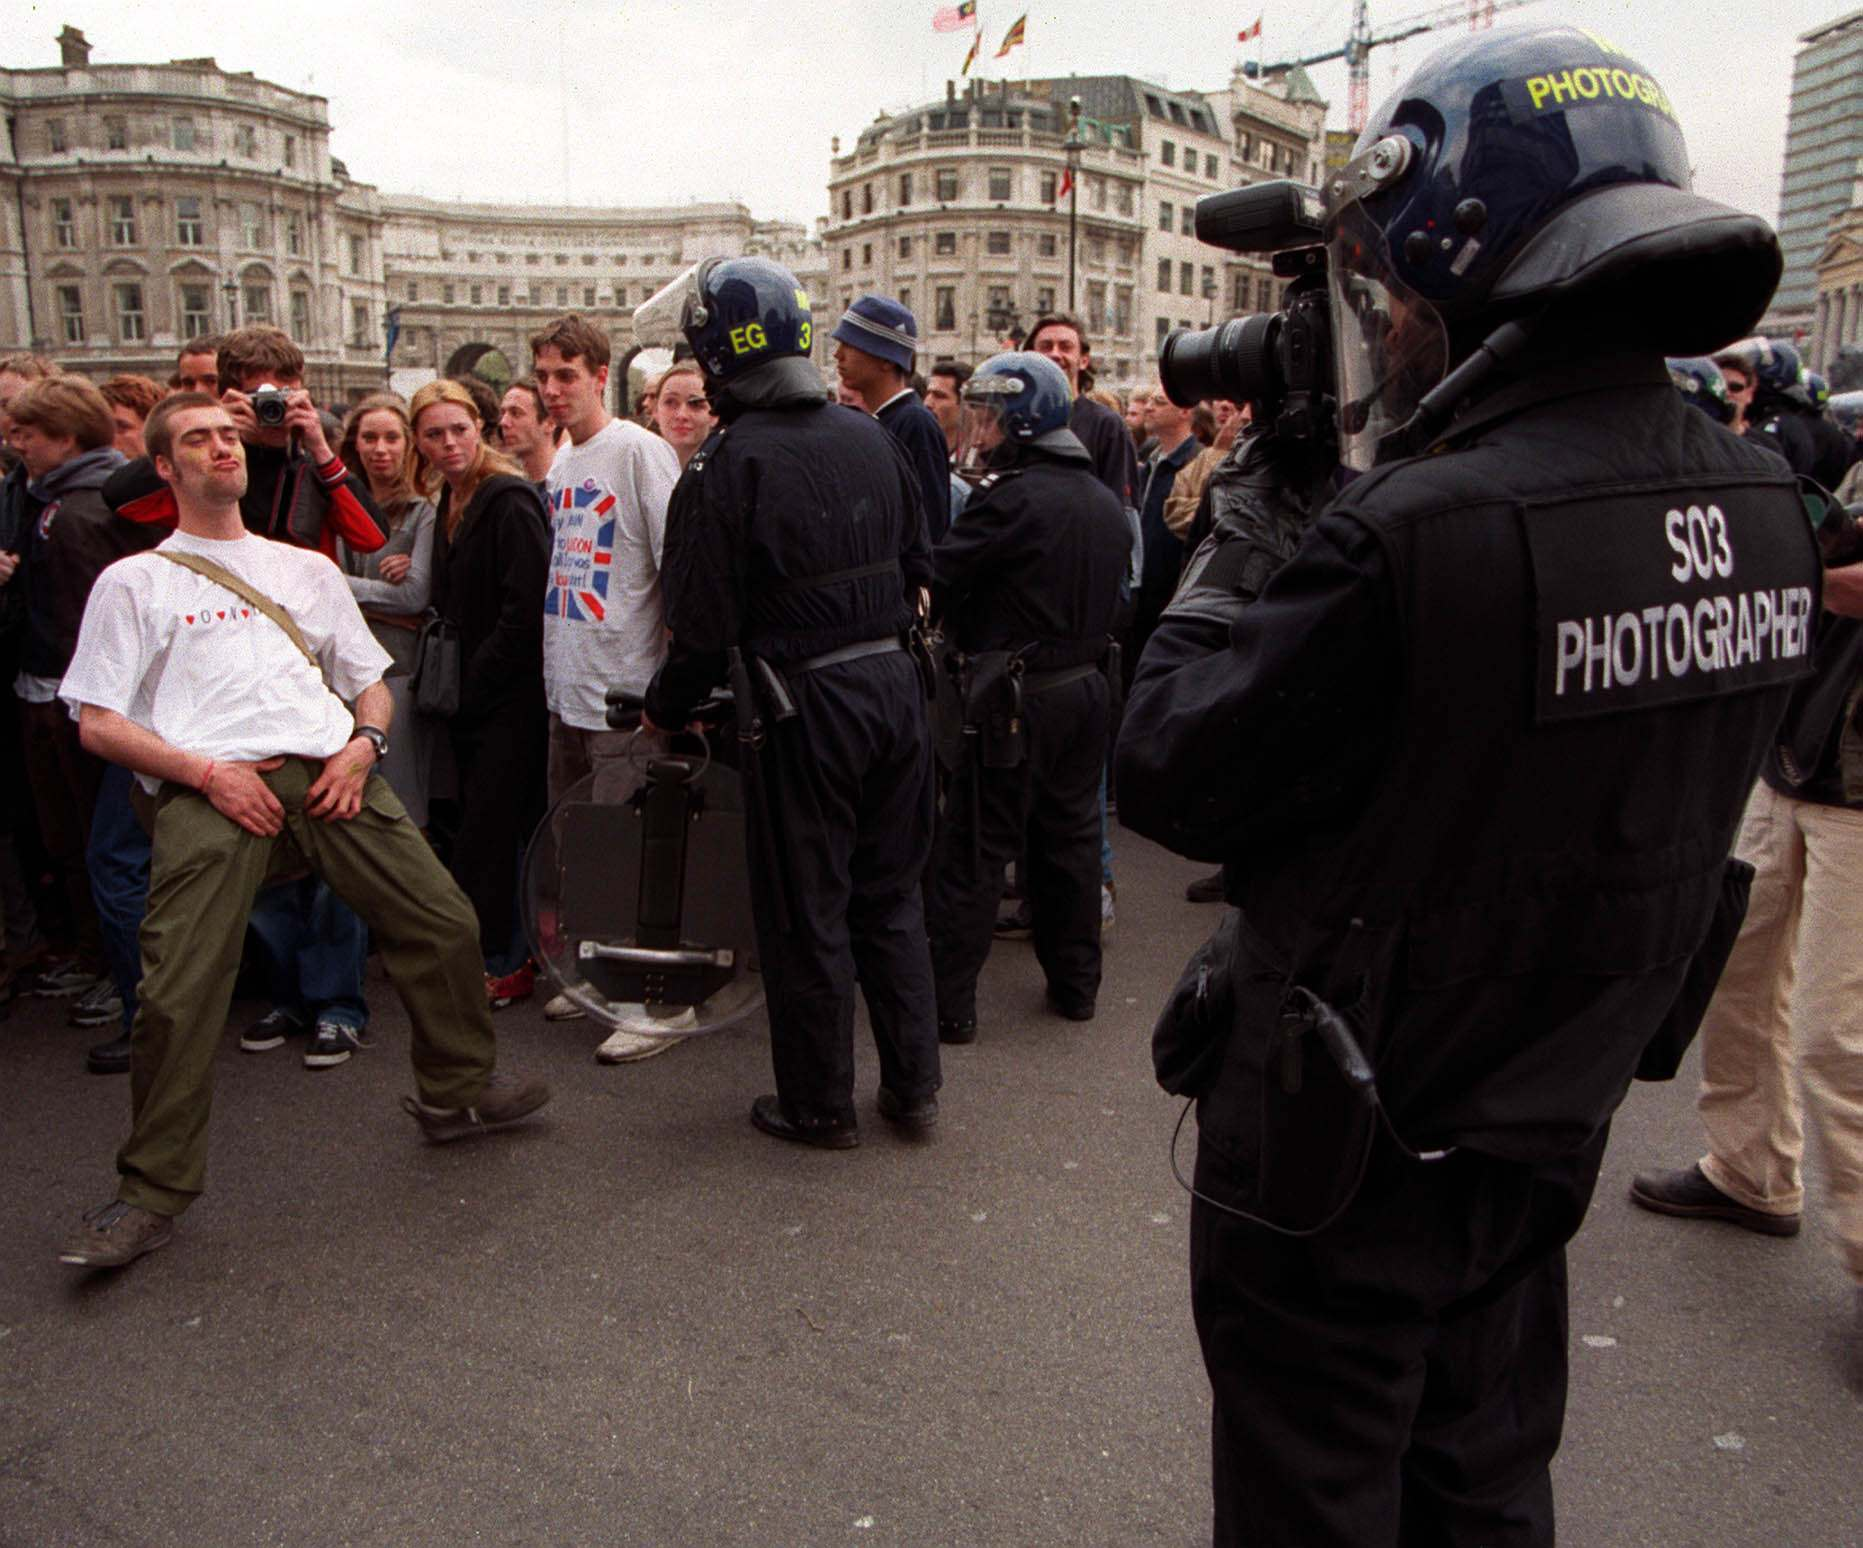 Anti-capitalist demonstrator being captured by a police surveillance photographer in Trafalgar Square, central London during their march from Parliament Square, 1/5/2000.